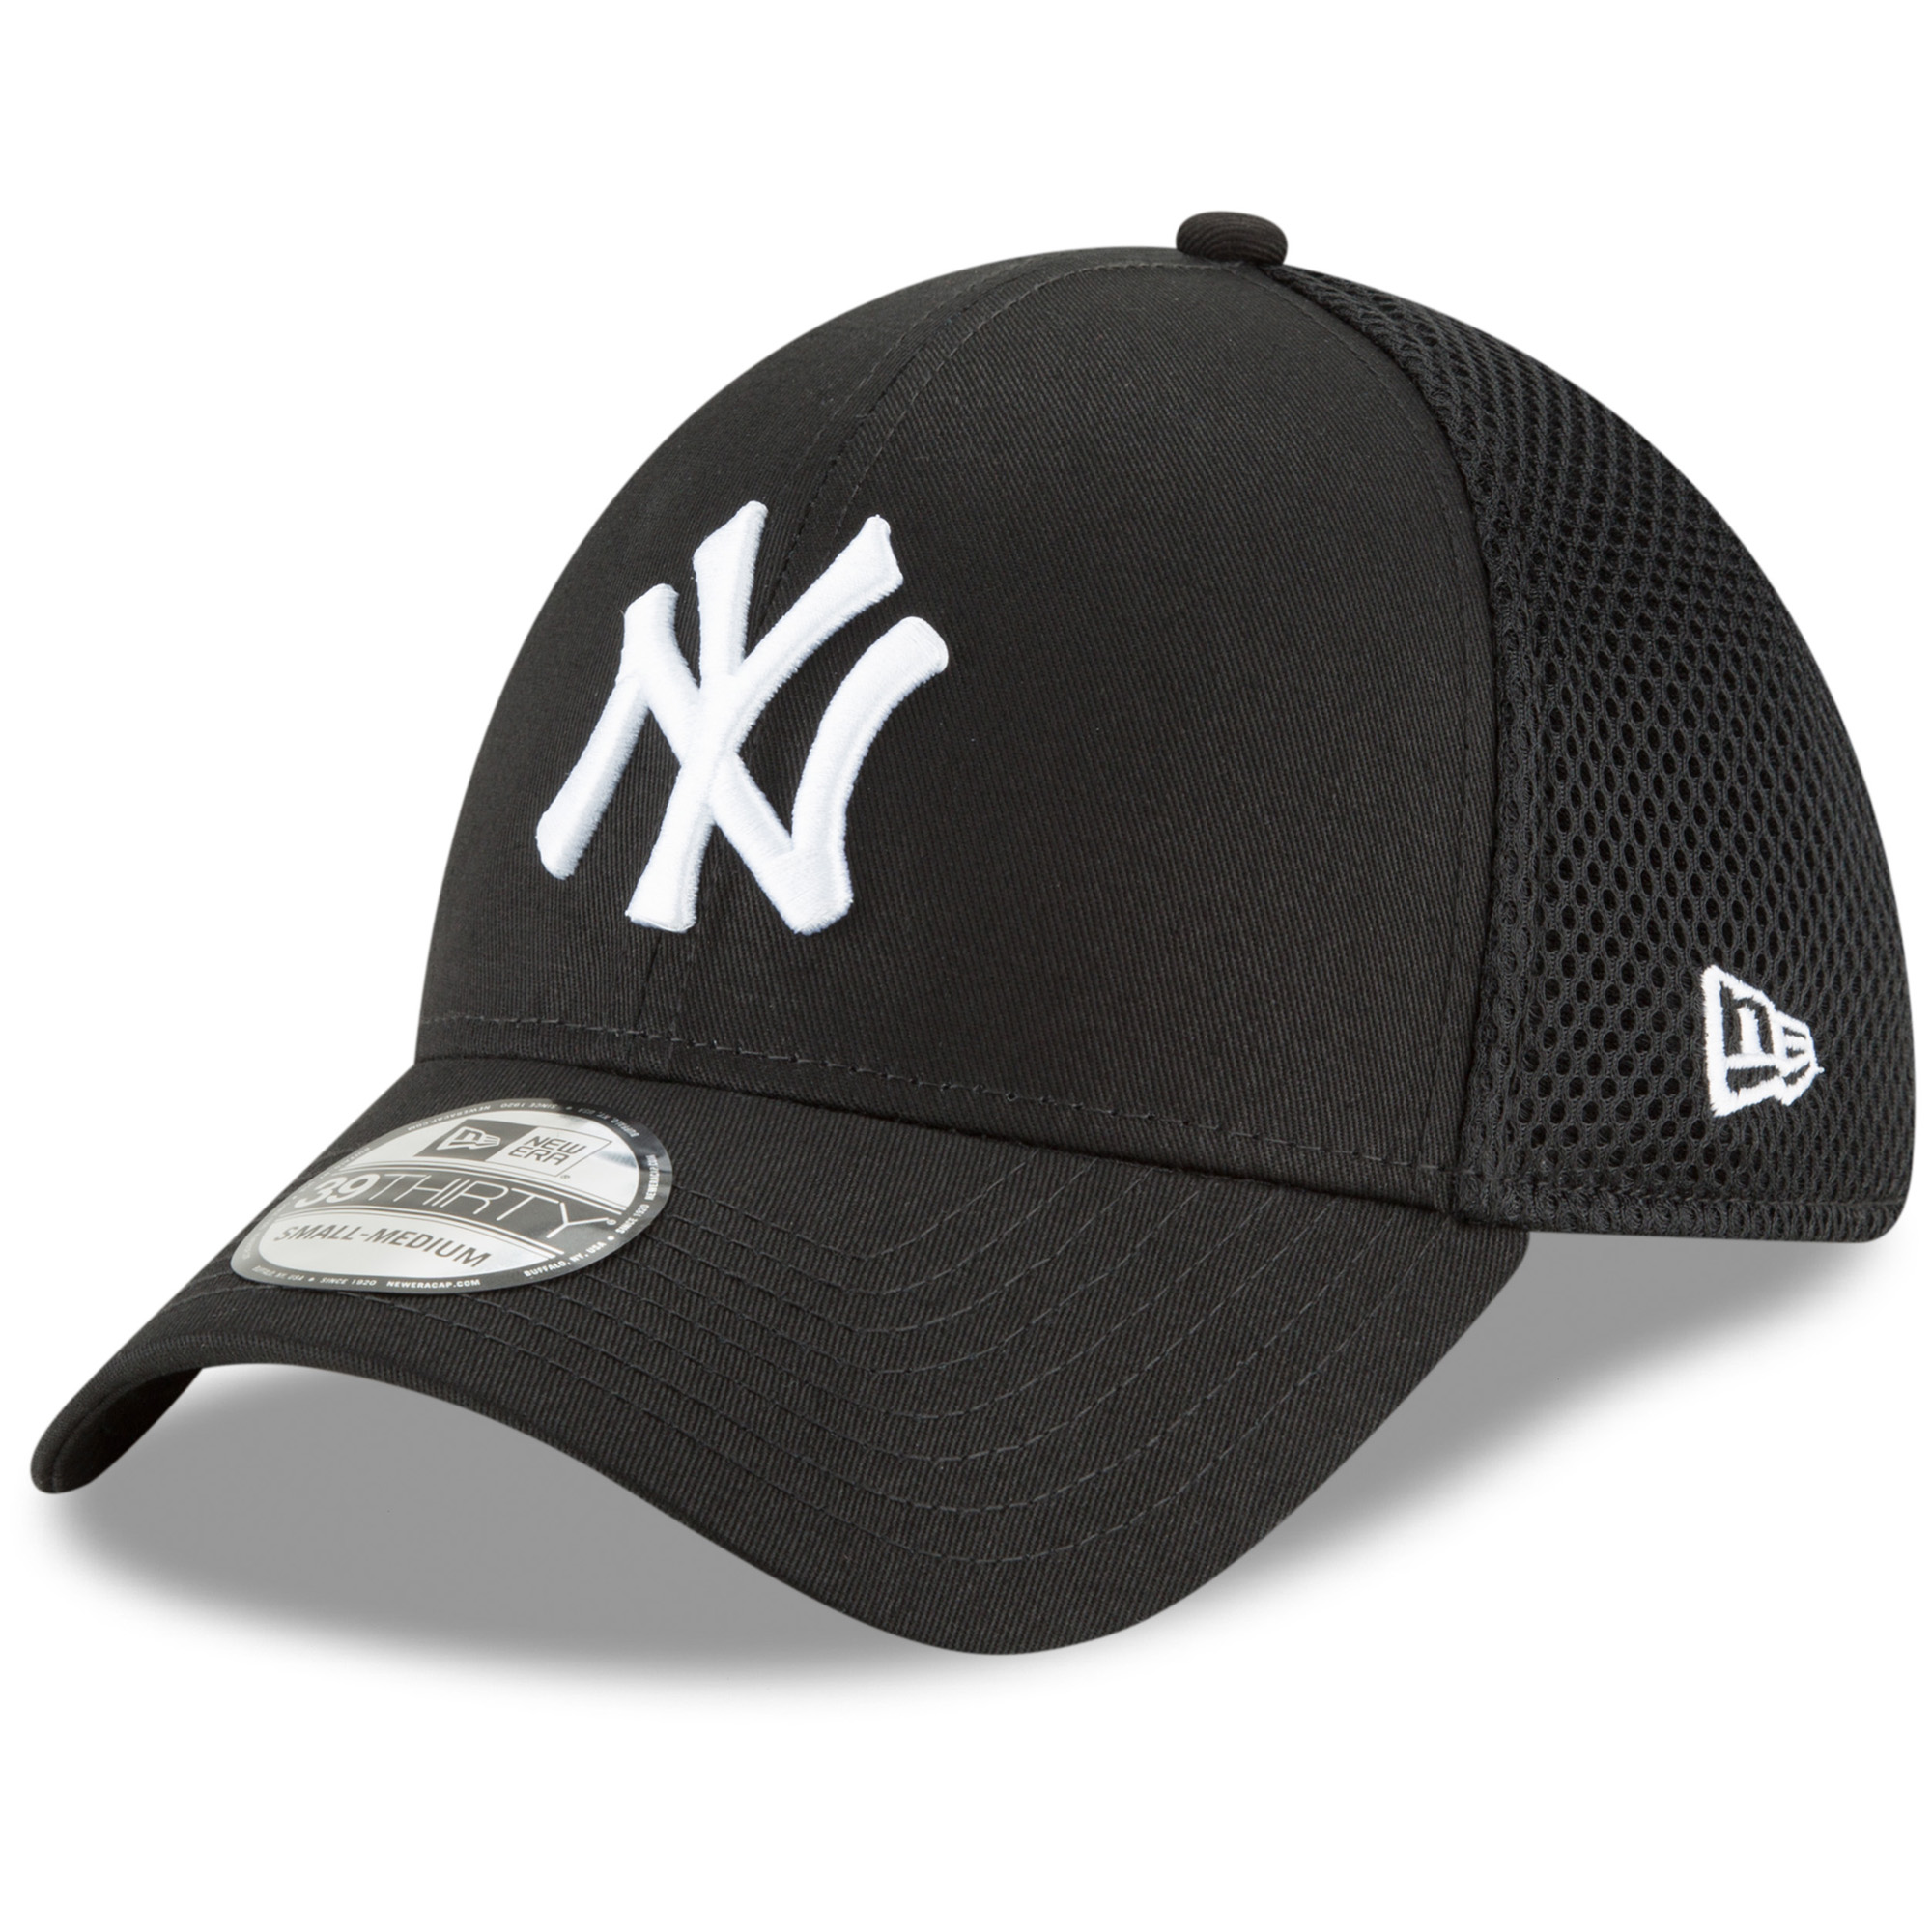 New York Yankees New Era Neo 39THIRTY Unstructured Flex Hat- Black